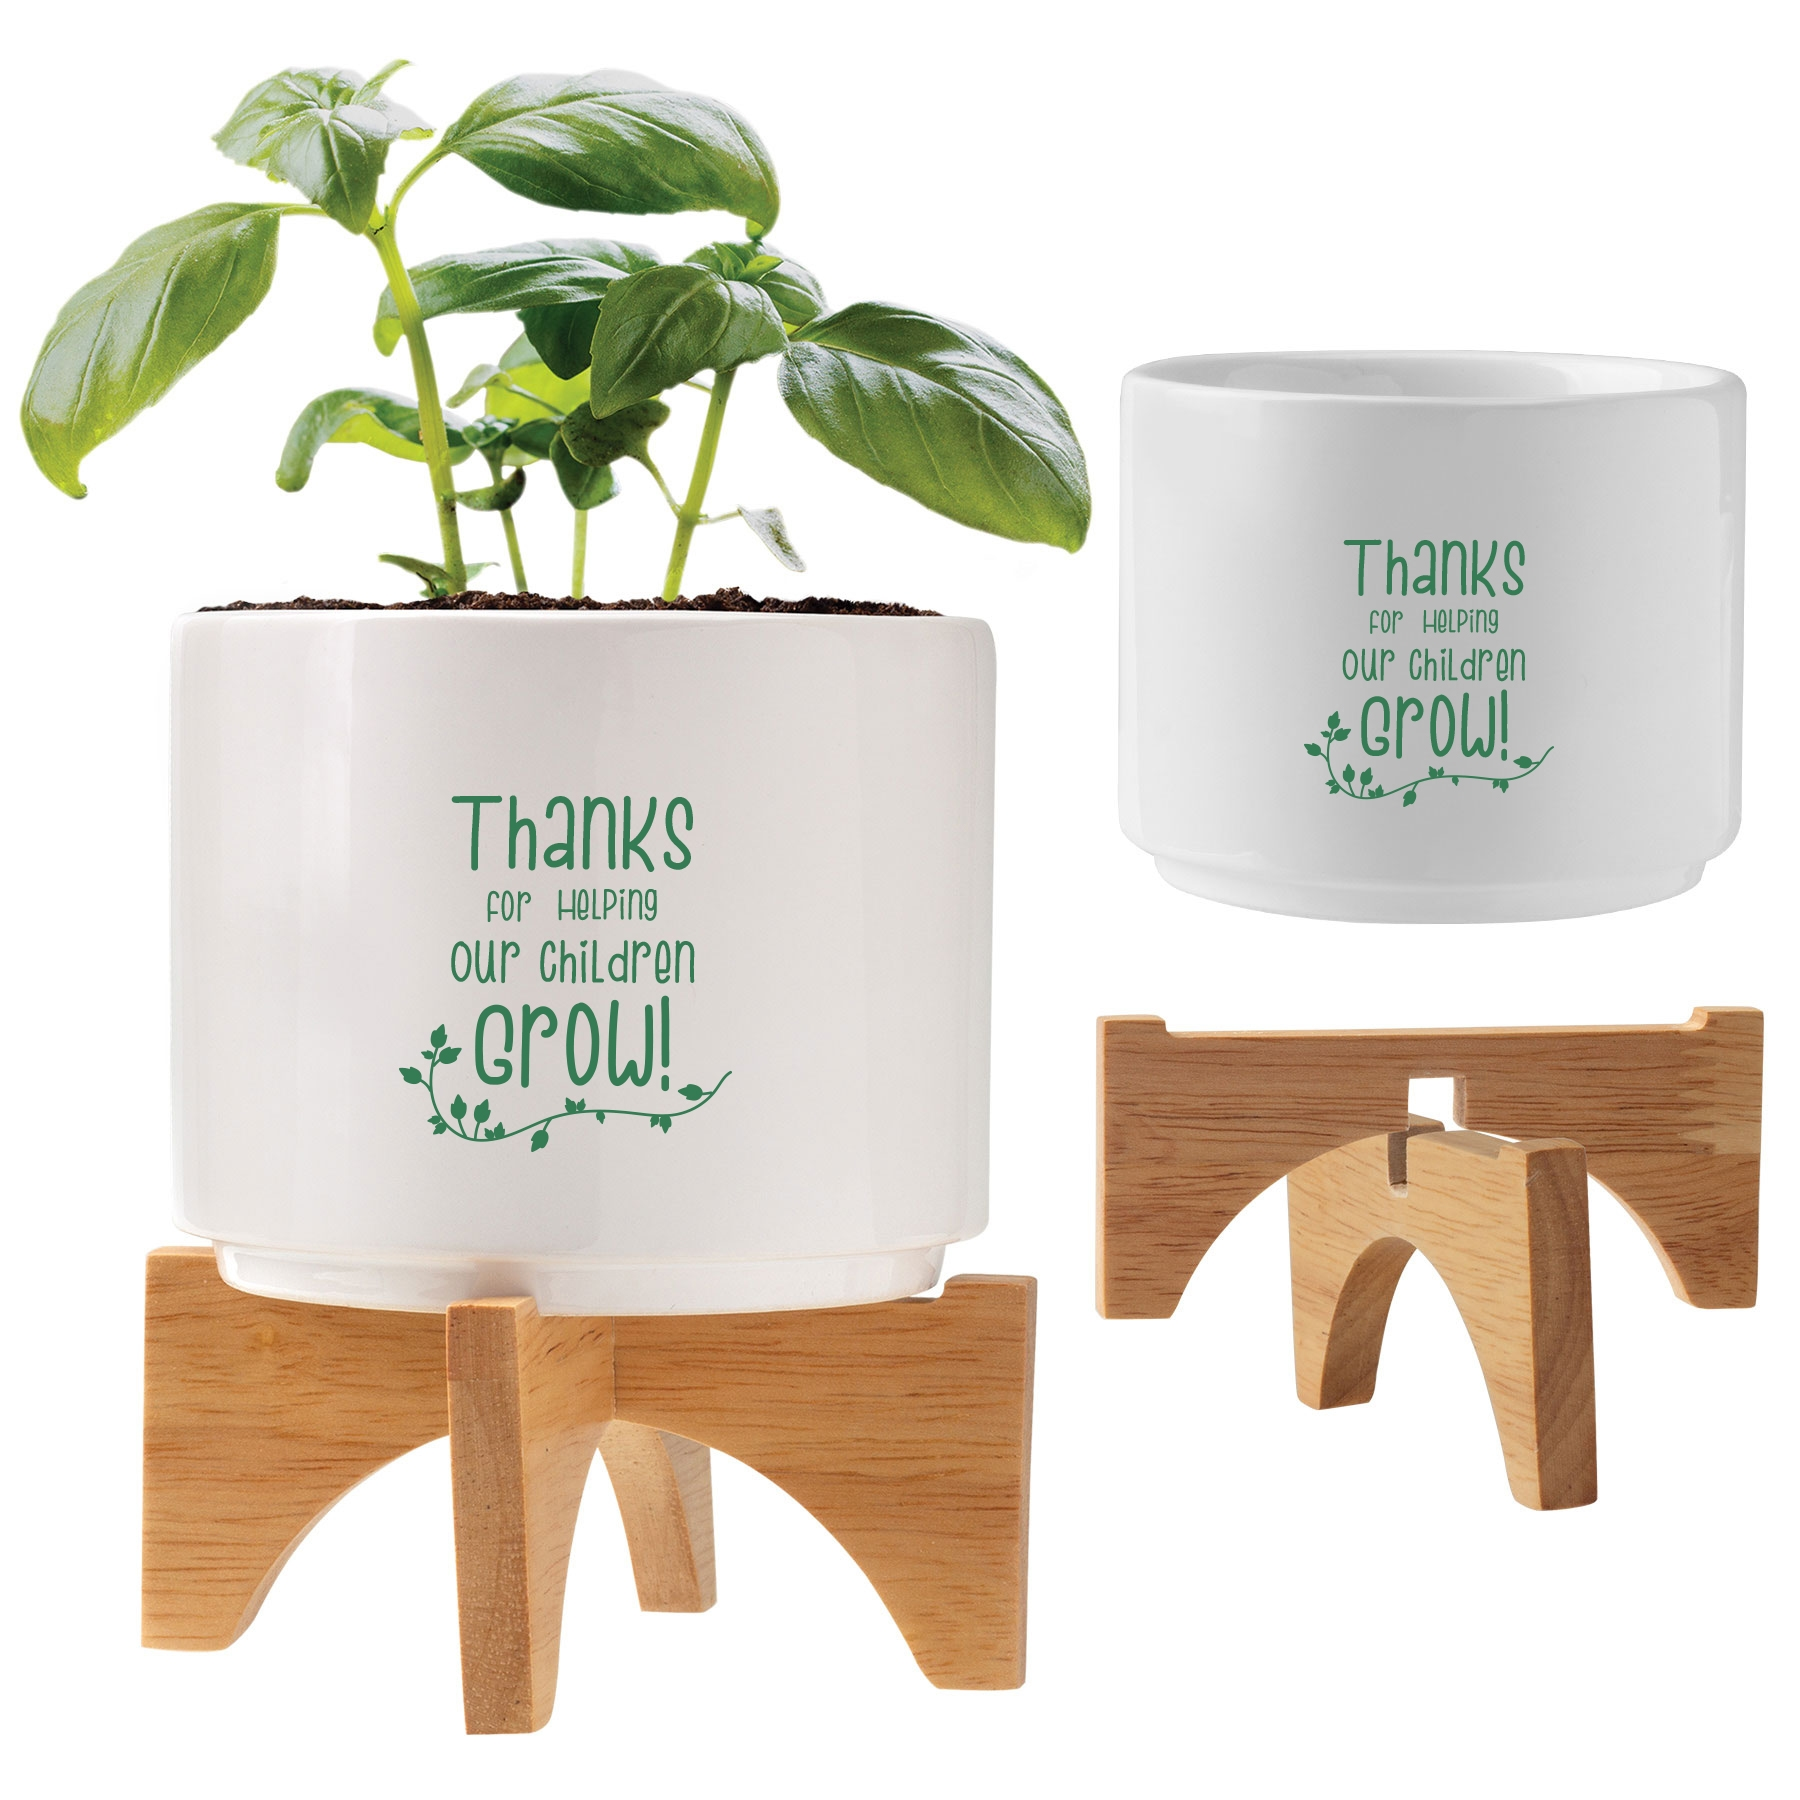 Ceramic and wood planter set with teacher appreciation quote